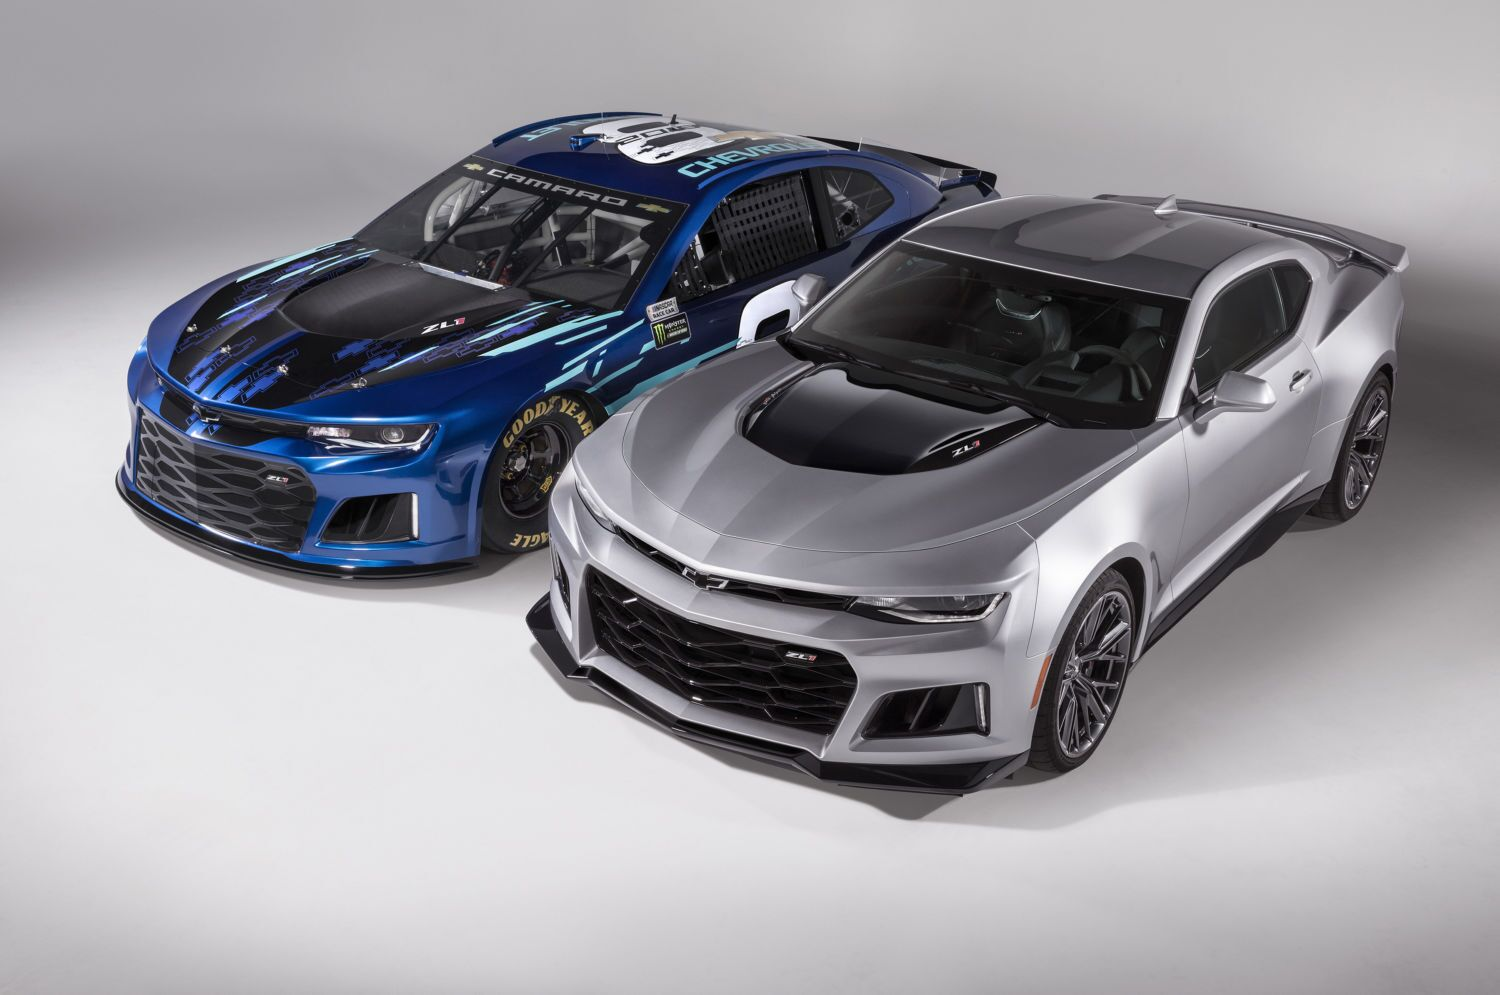 This Is The 2018 Chevrolet Camaro Zl1 Nascar Cup Race Car